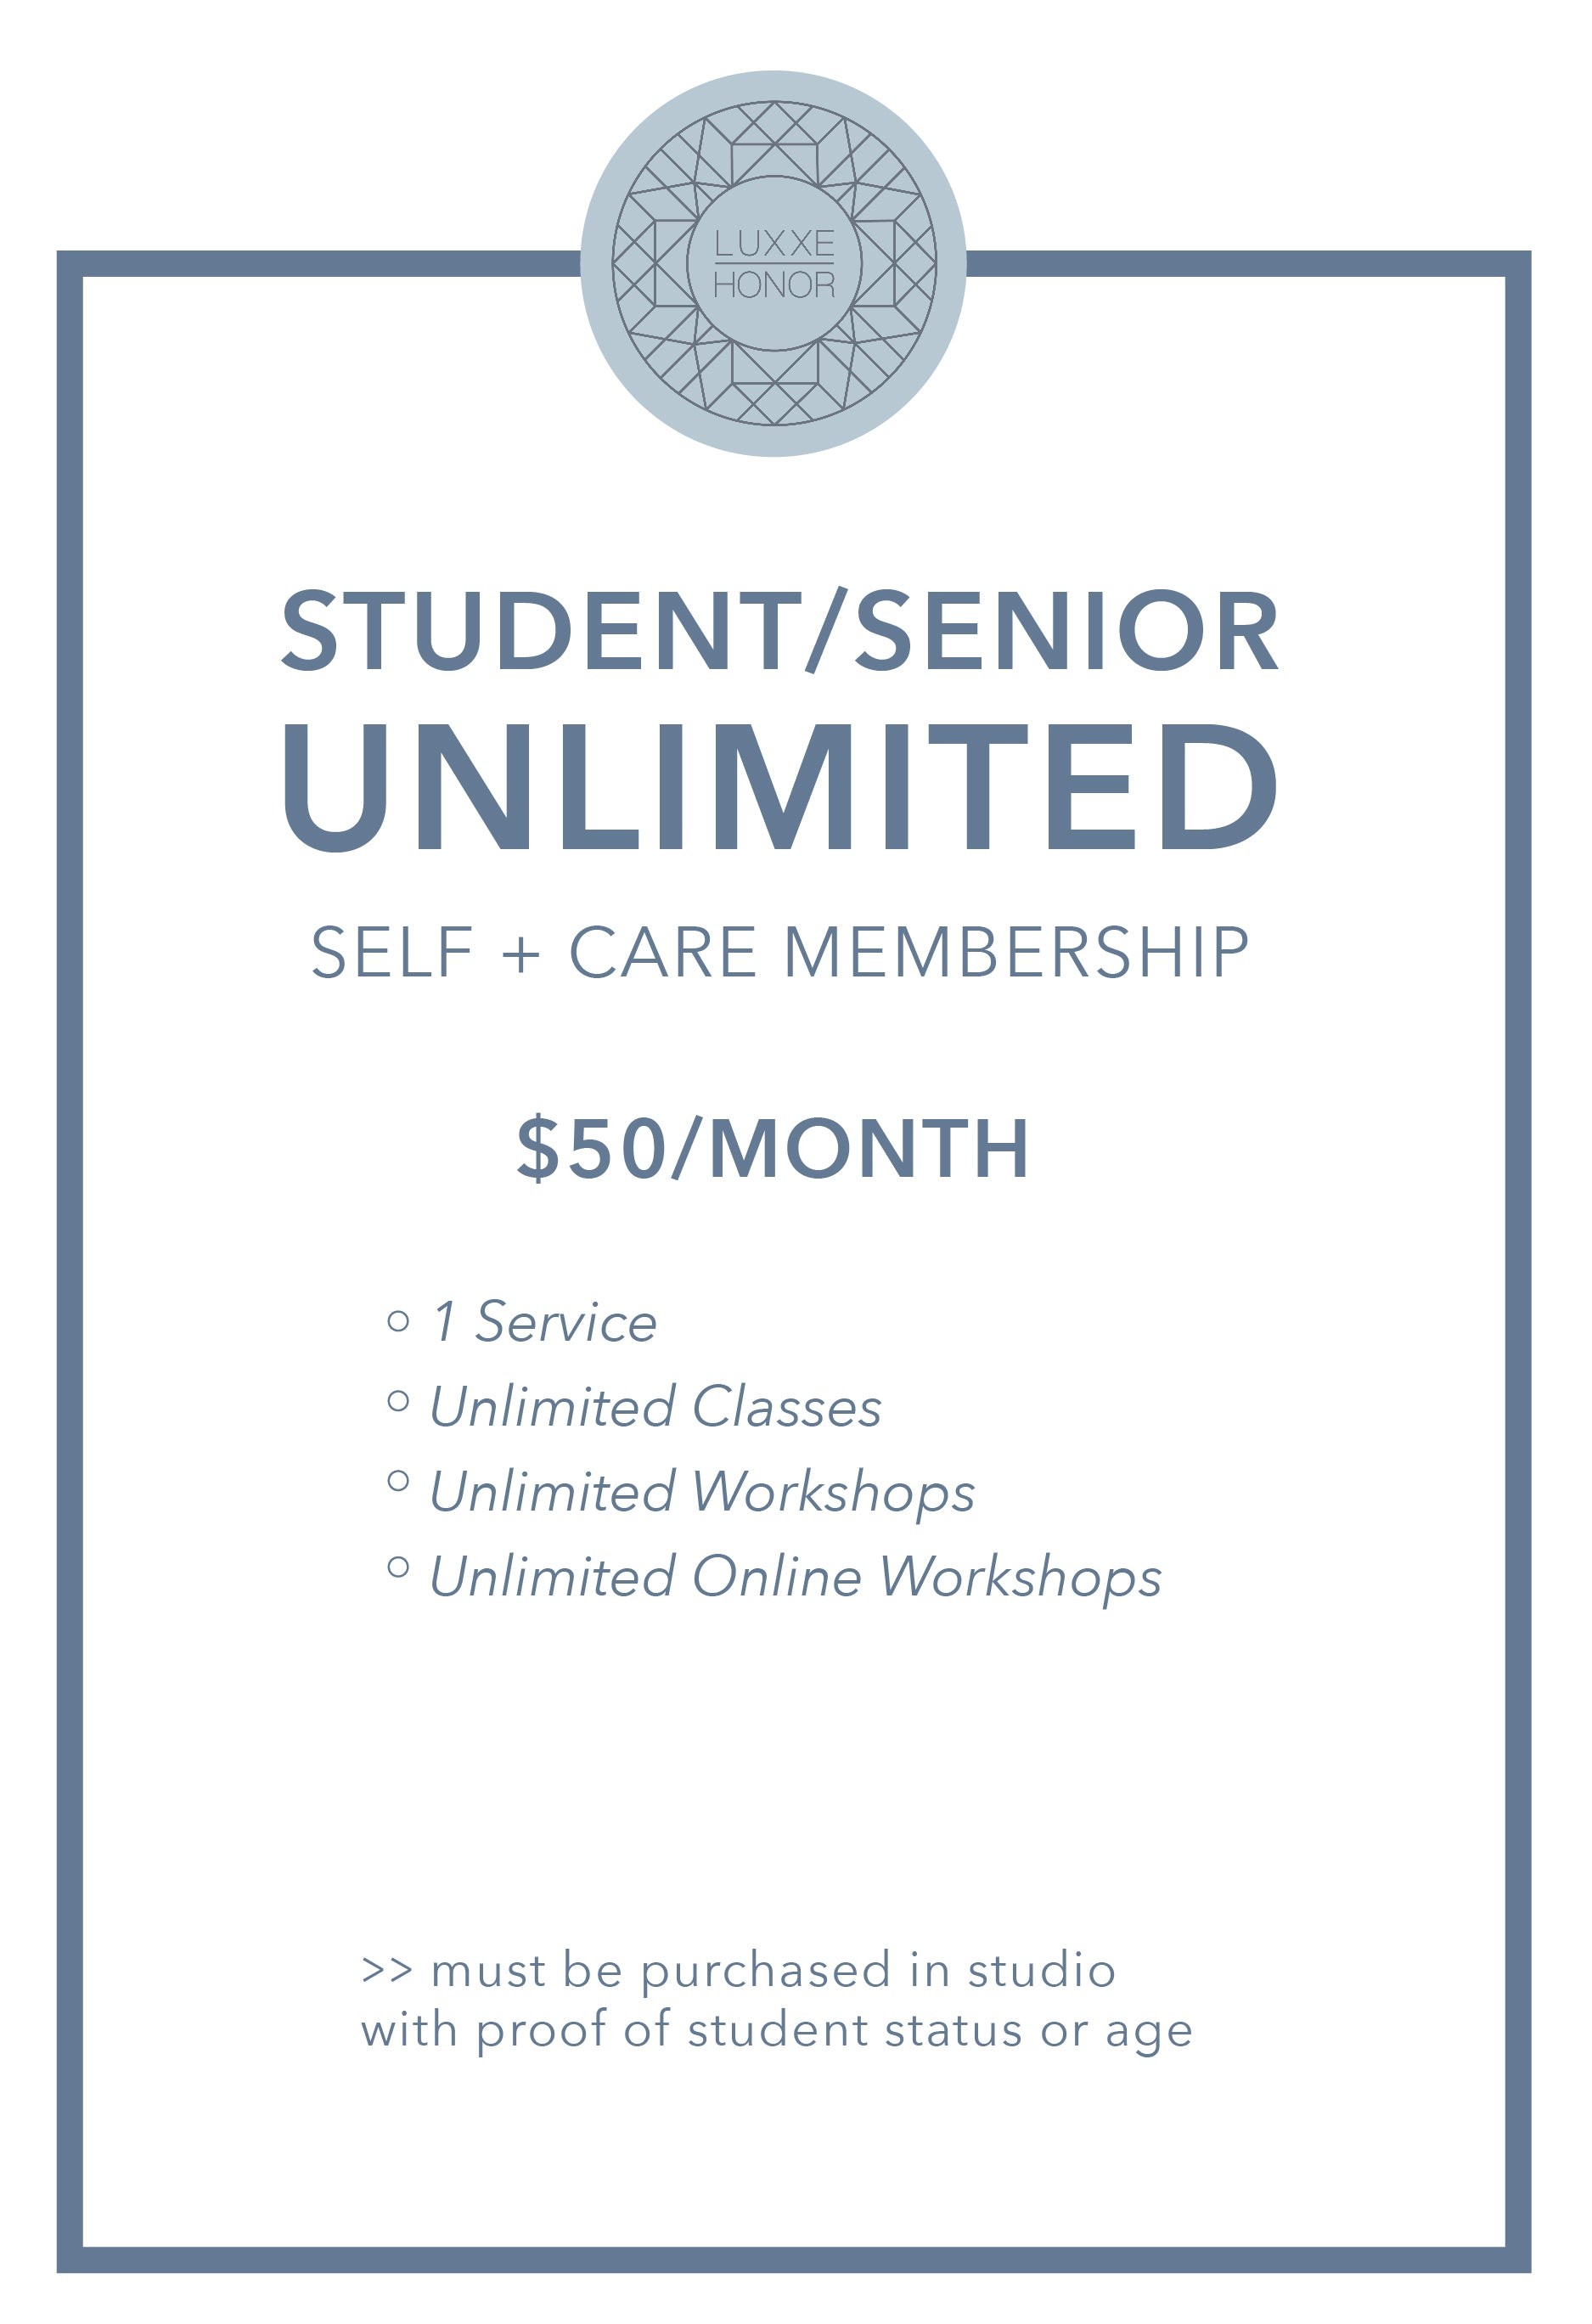 Luxxe Honor Student/Senior Unlimited Membership